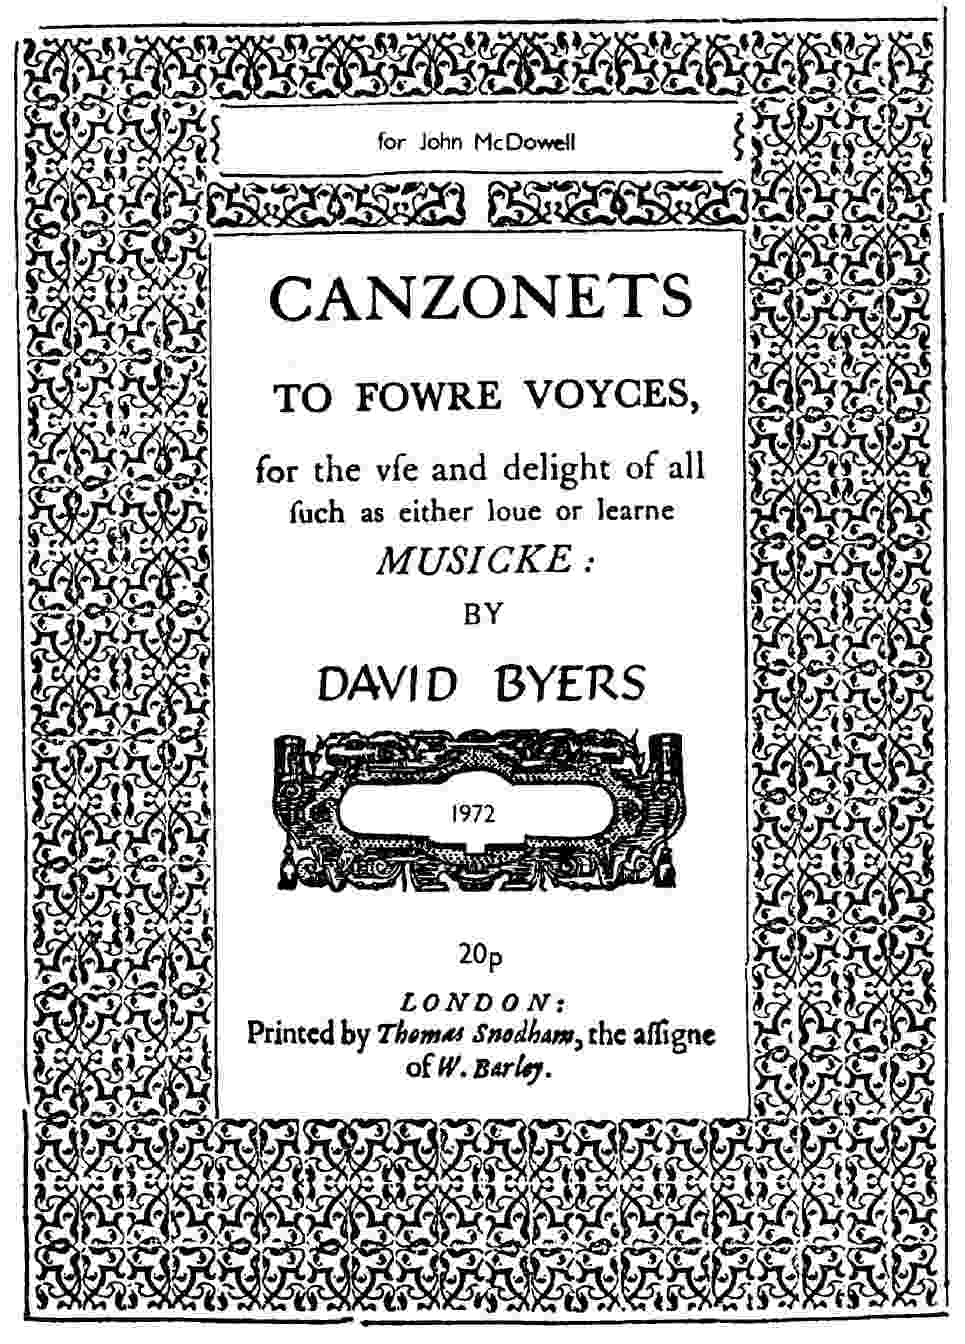 David Byers Canzonets title page